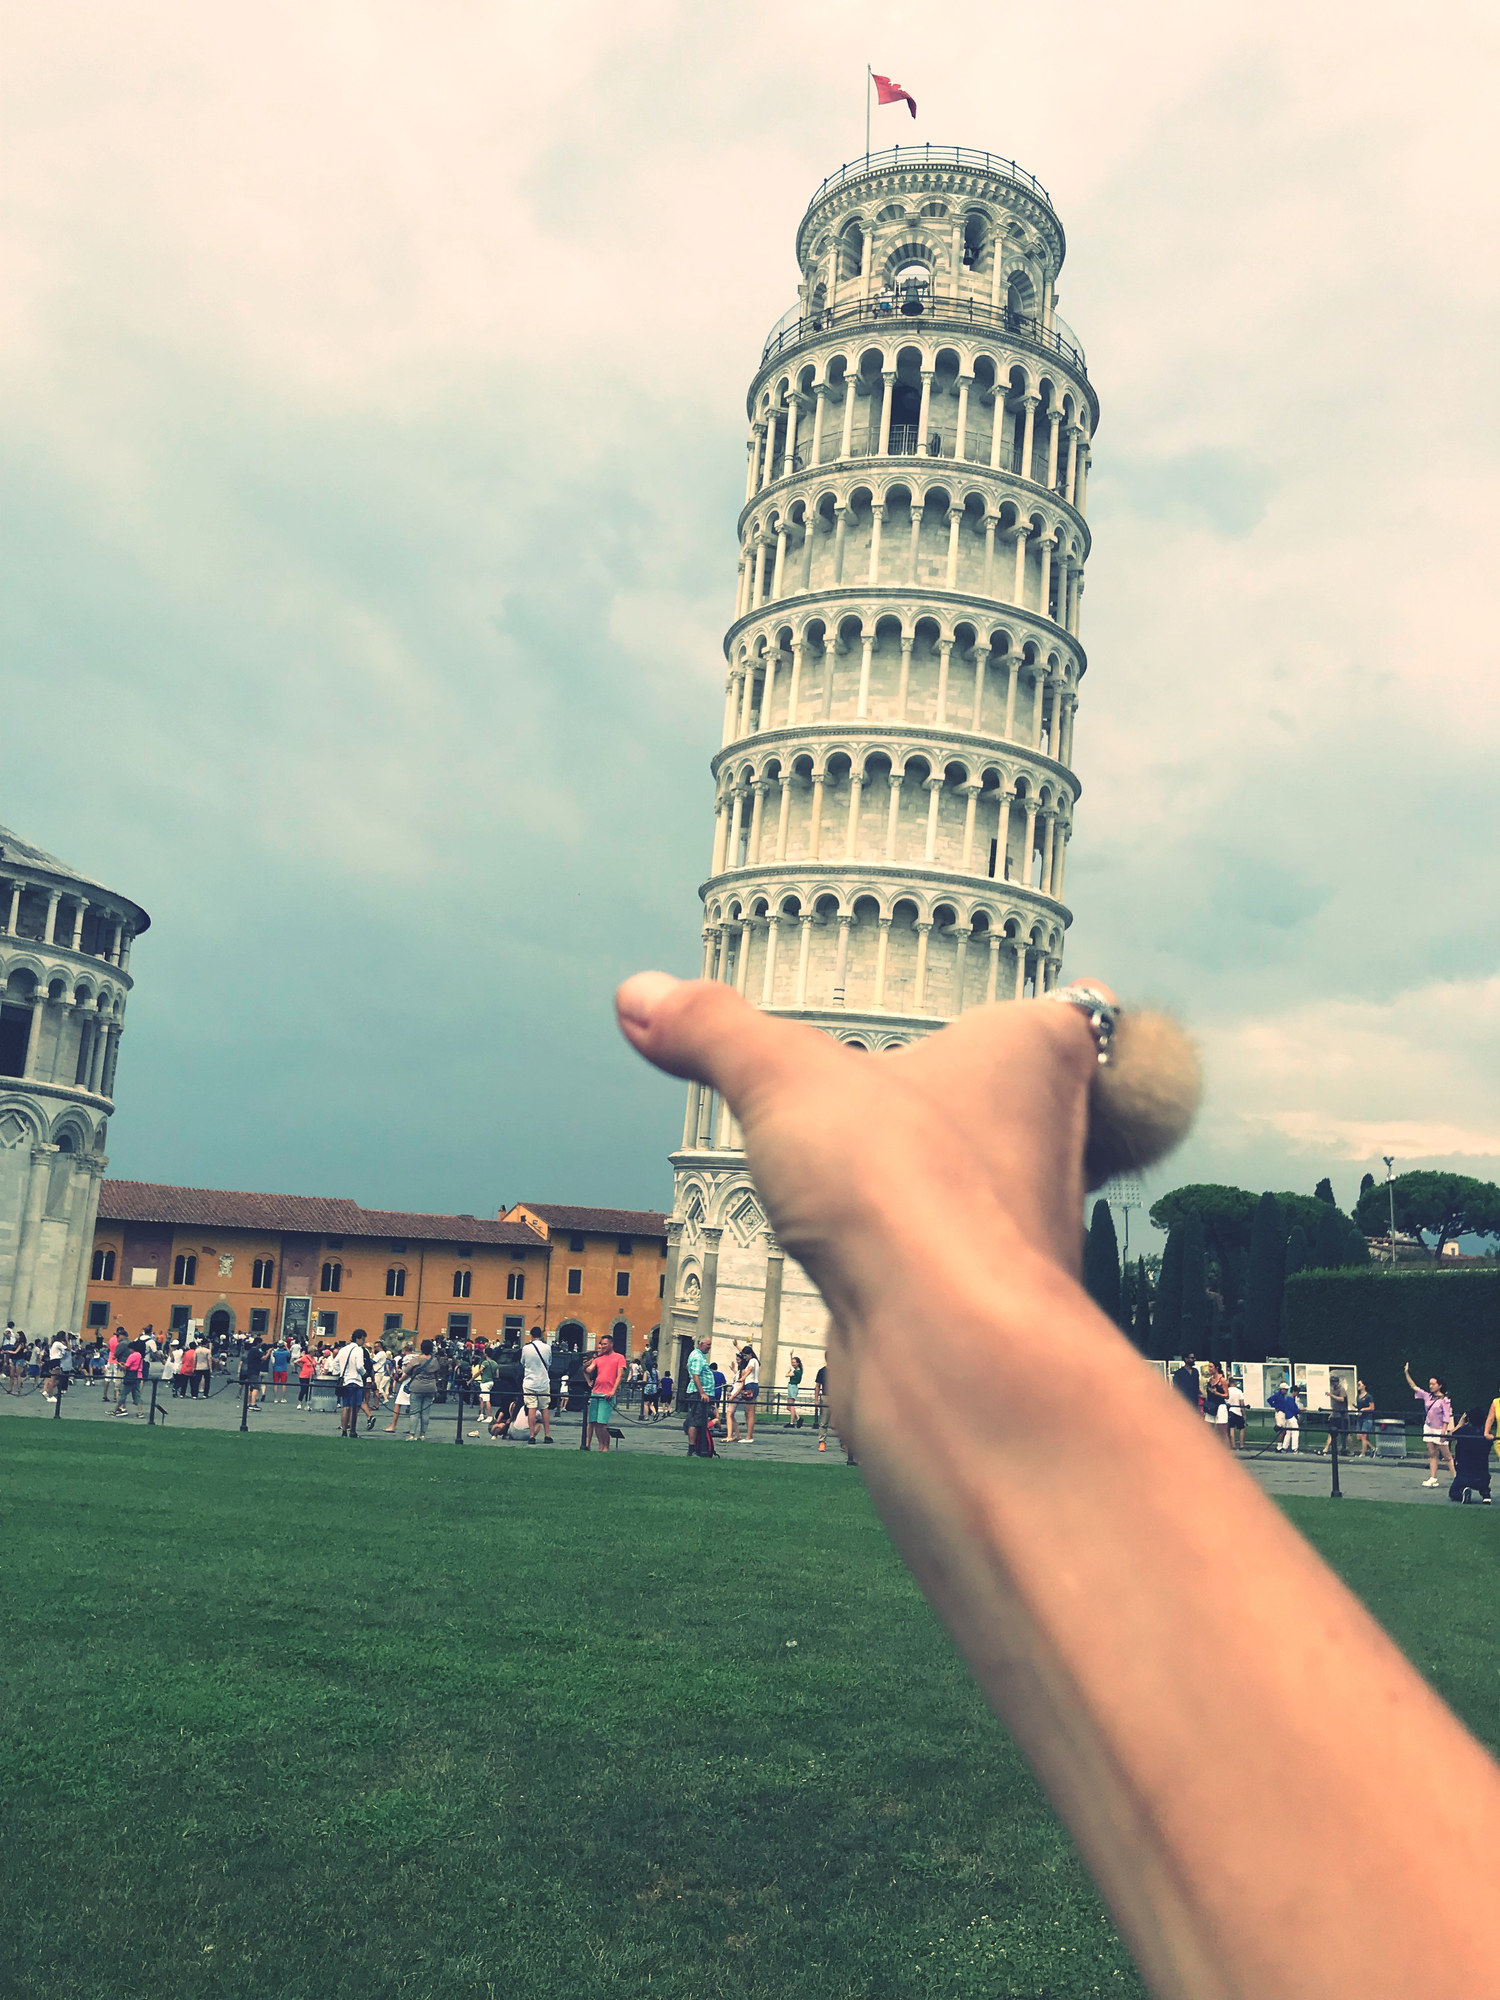 A hand pretending to hold the Leaning Tower of Pisa